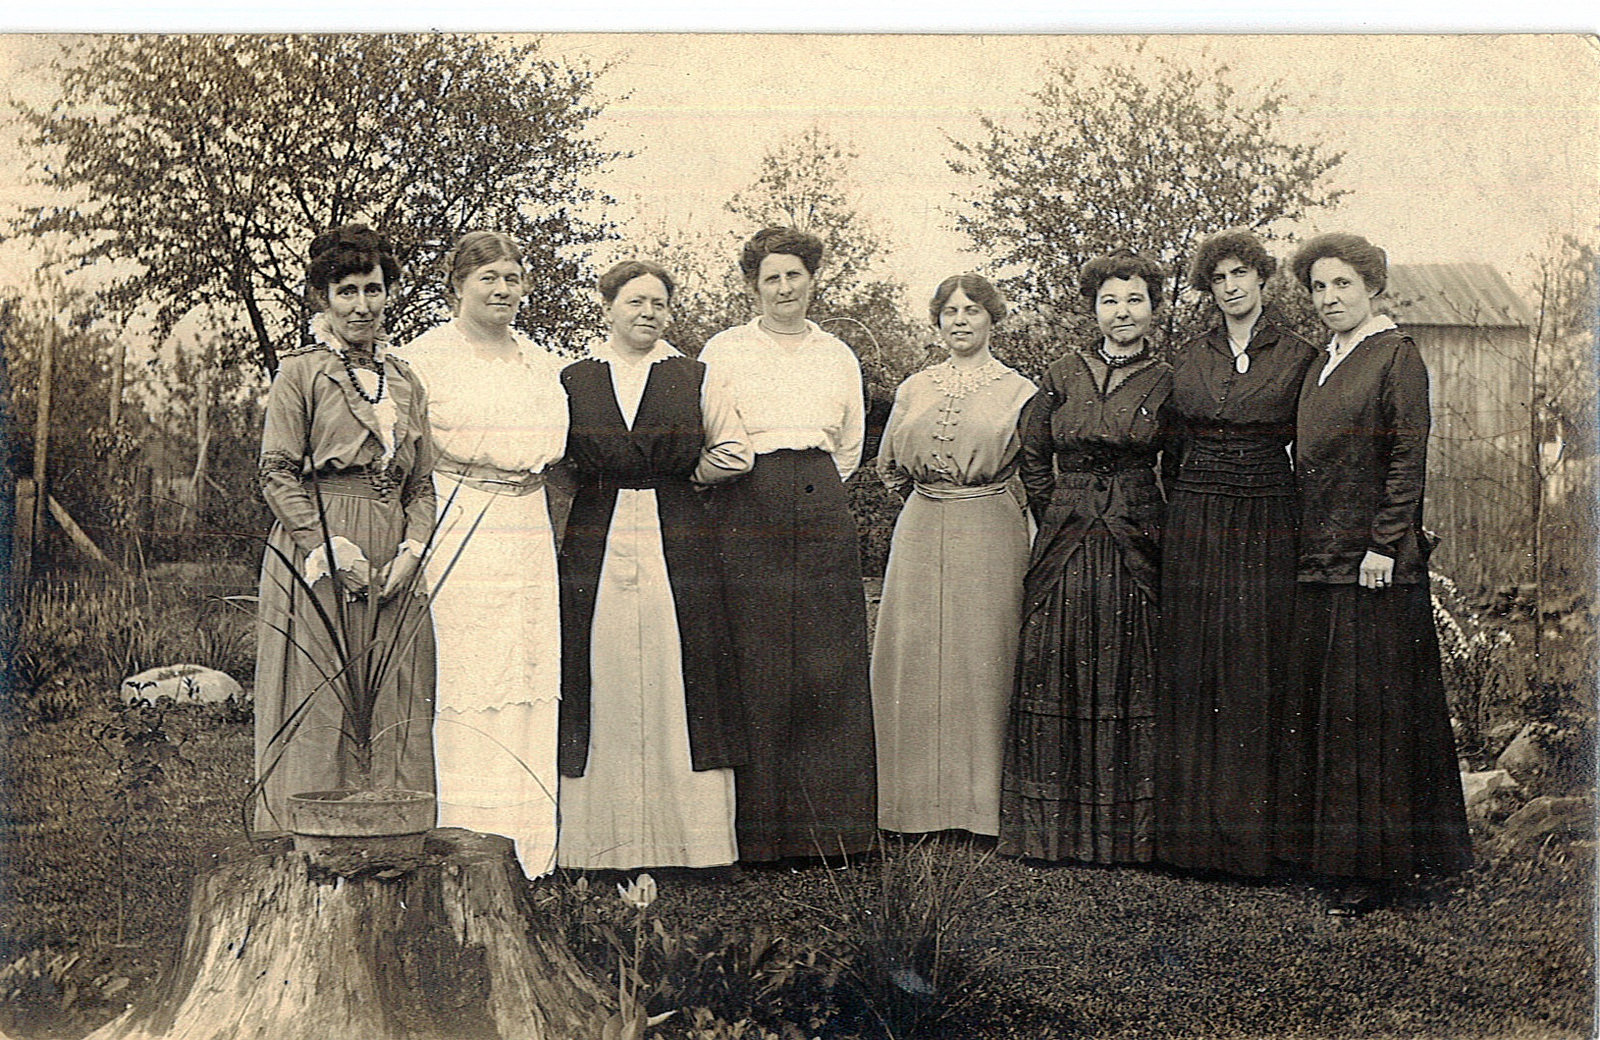 An old, black and white photo of a group of women standing together outdoors, in front of a backdrop of trees - from the Kalamazoo Public Library McConnell collection